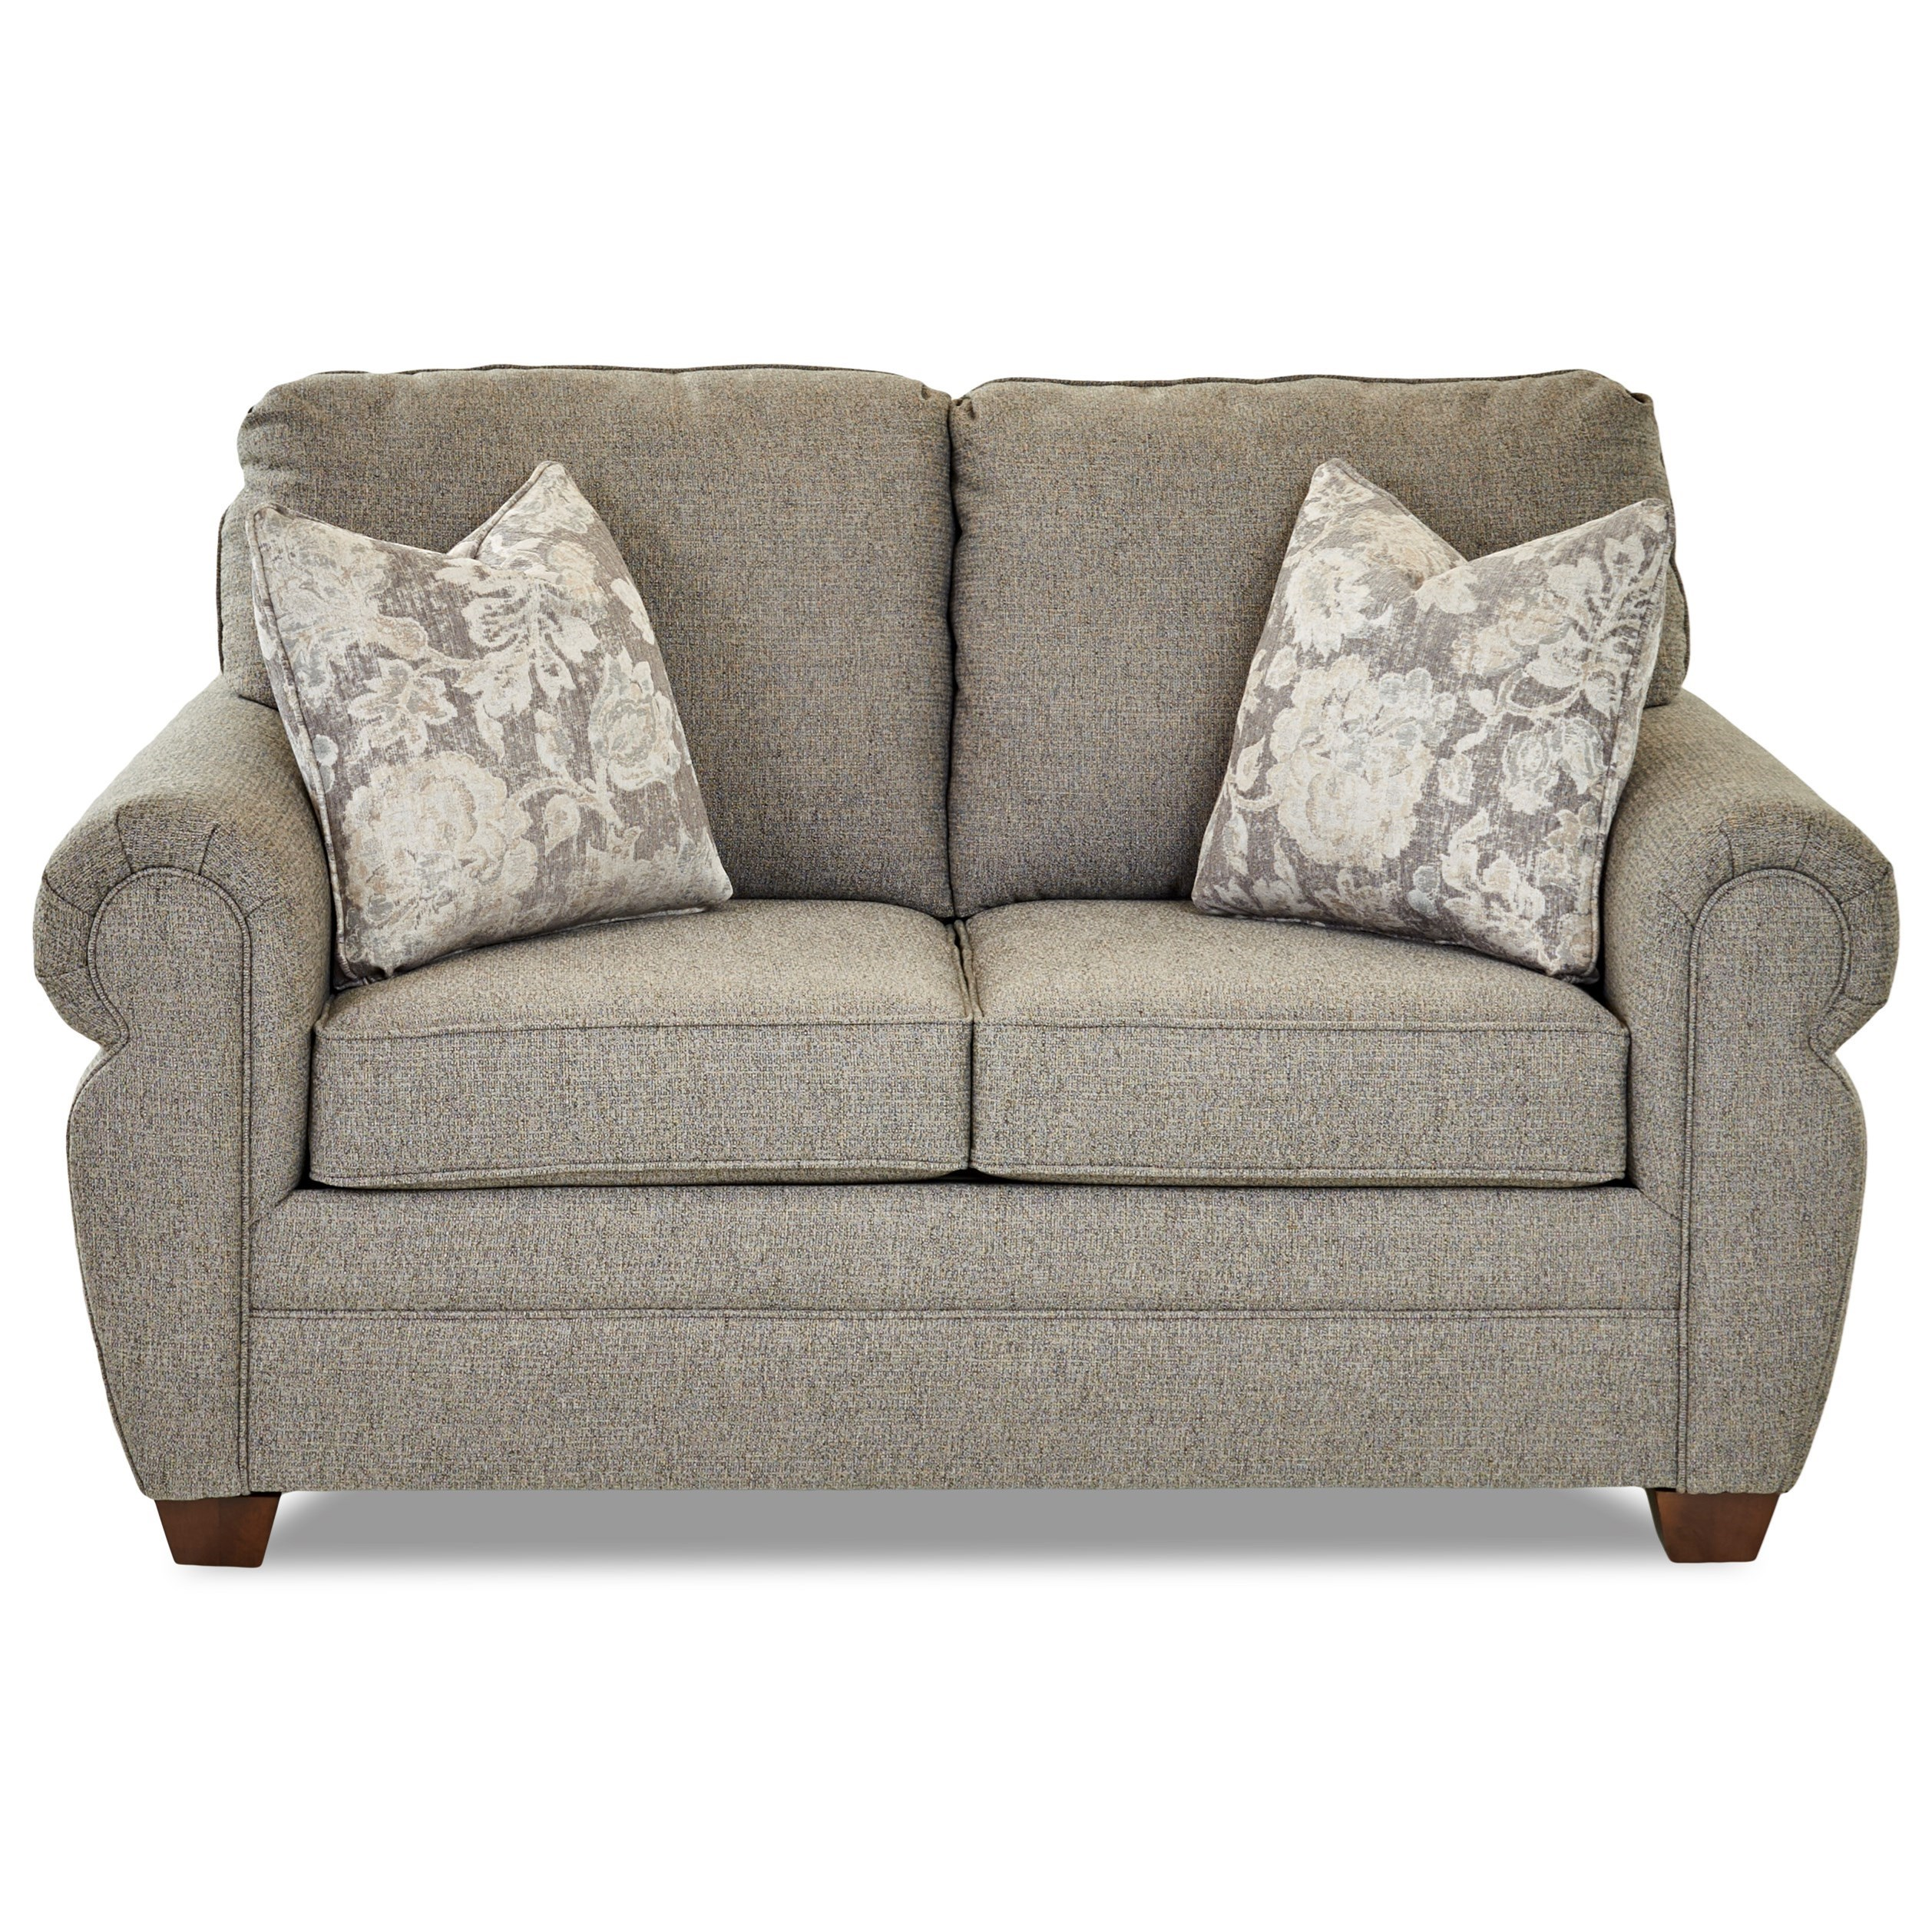 Westbrook Loveseat by Klaussner at Johnny Janosik